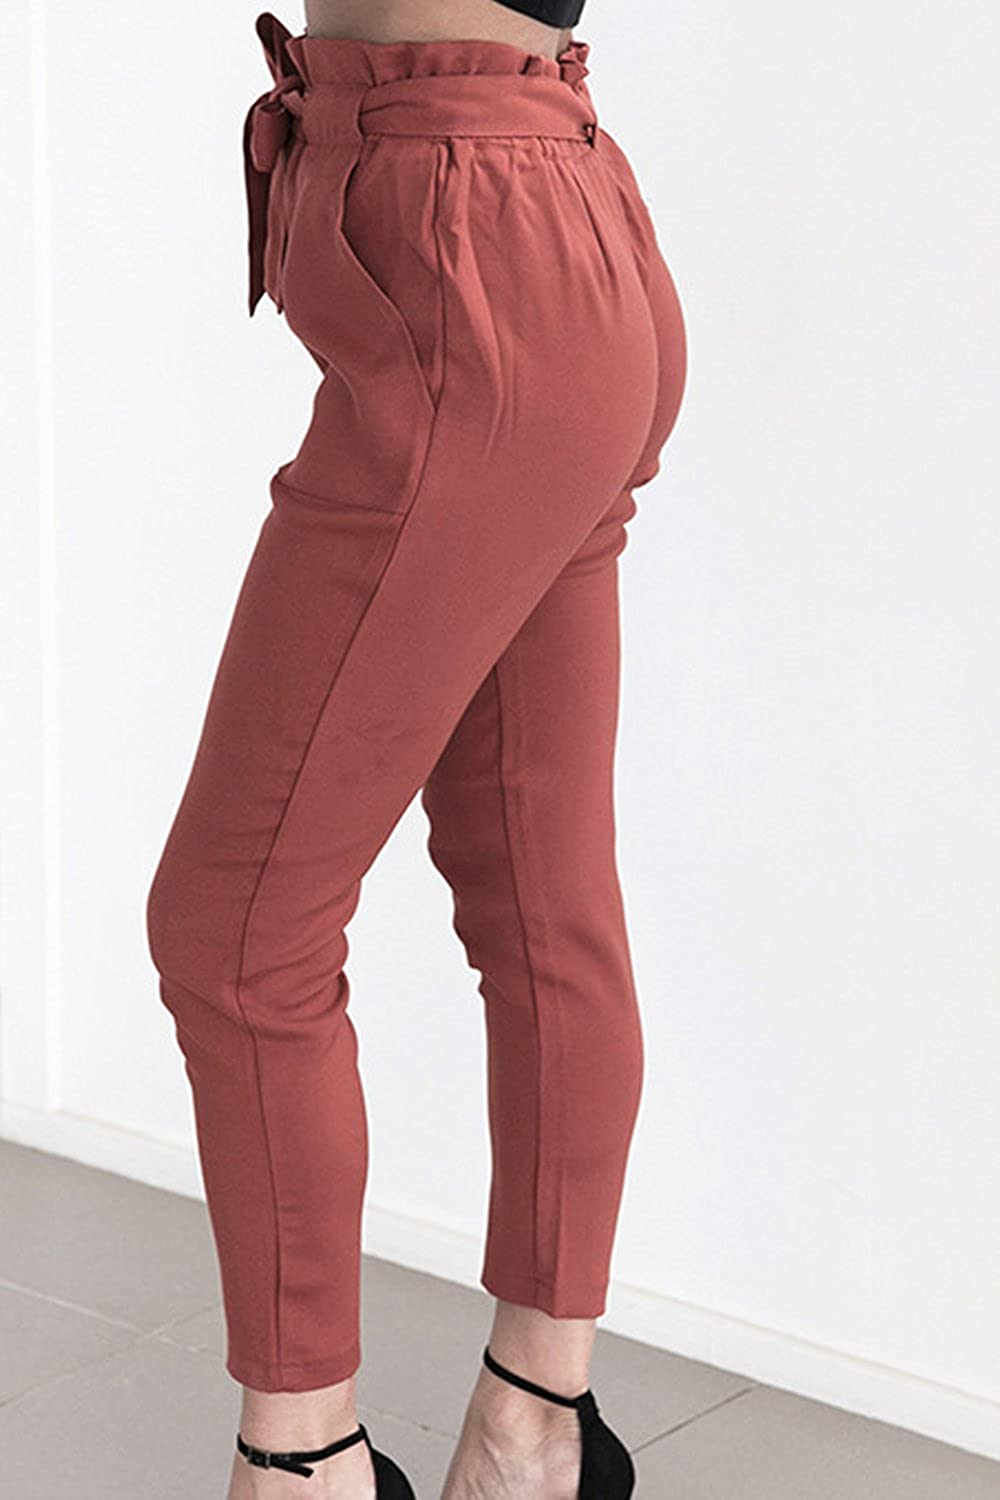 Zojuyozio Womens High Waist Ruffle Belted Ankle Pants Skinny Fit Solid Trousers